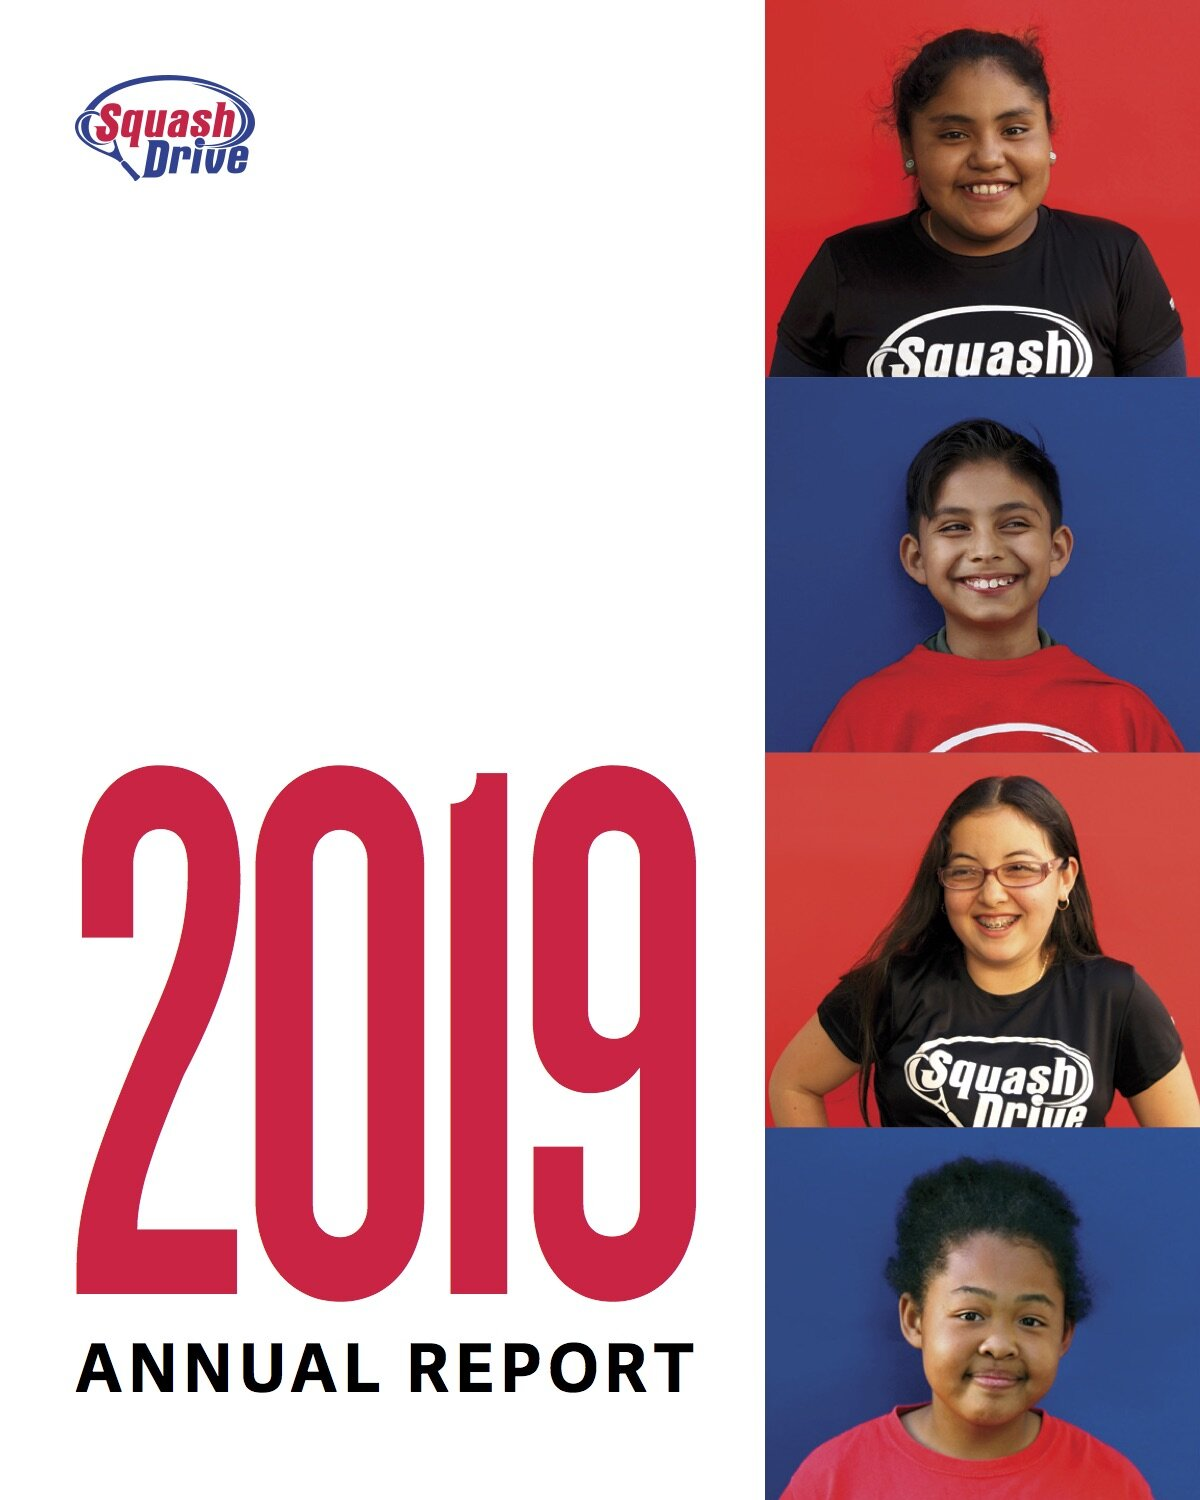 SquashDrive_AnnualReport-2019.jpg